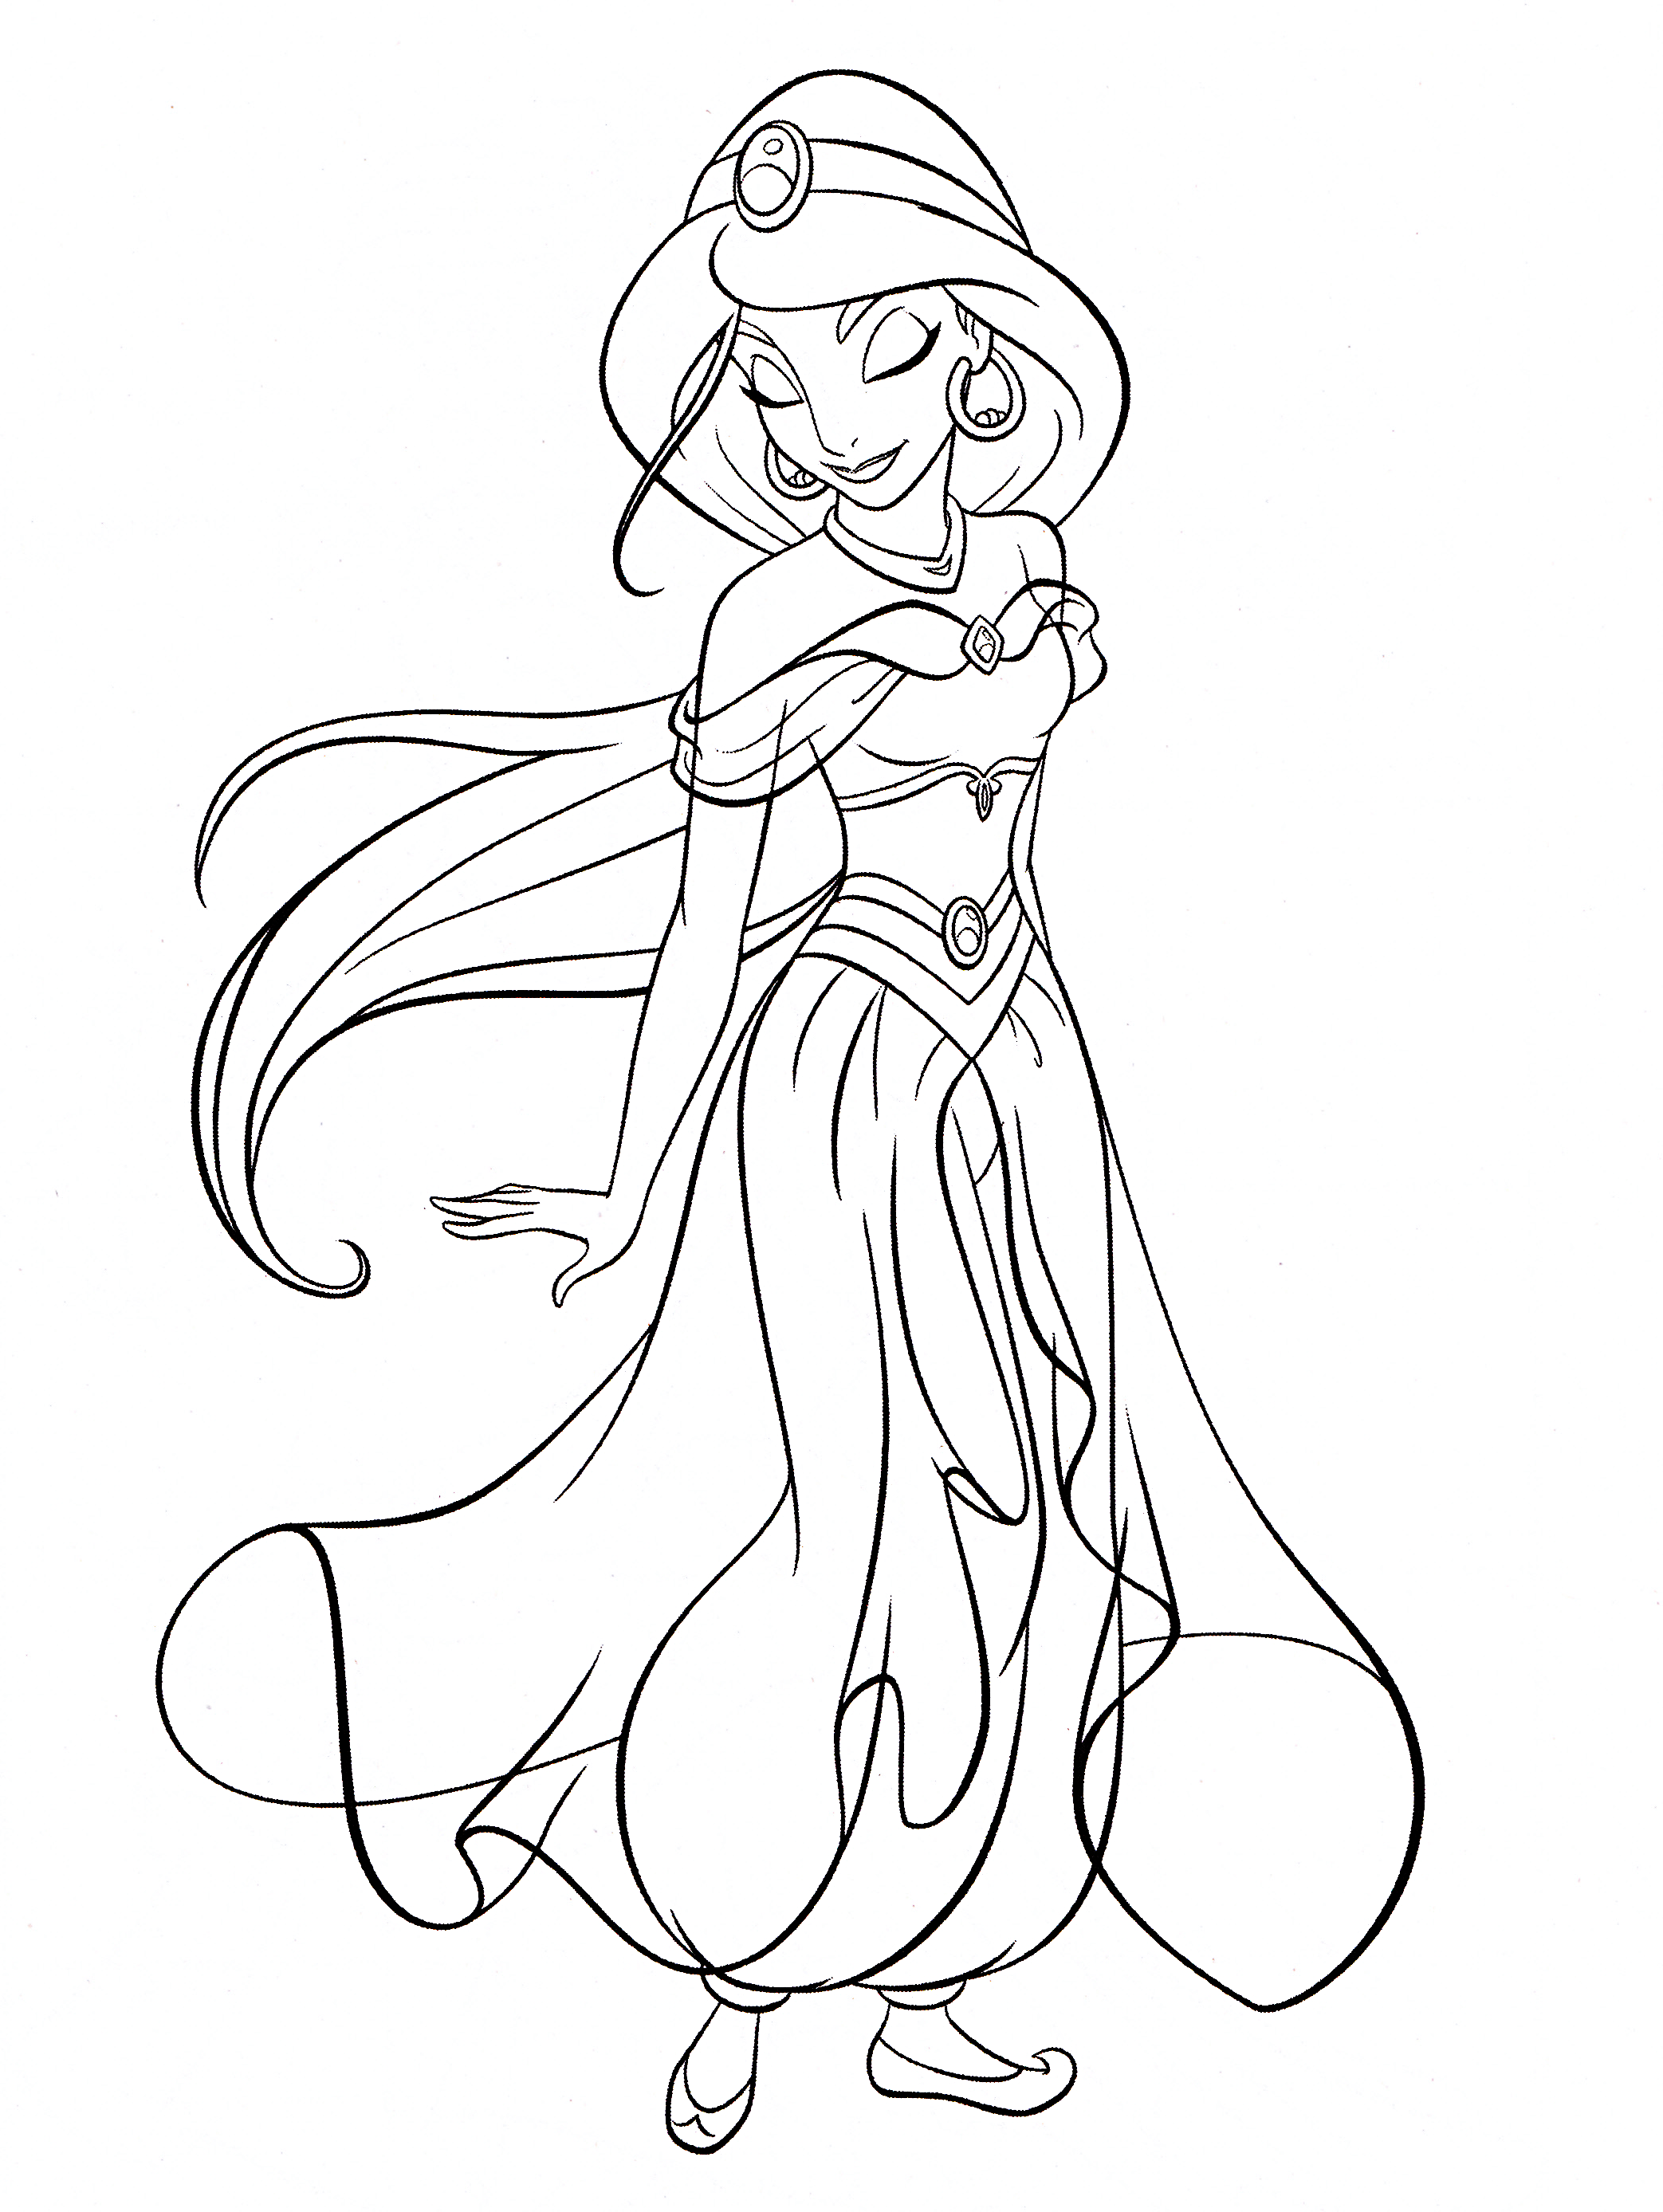 Walt Disney Coloring Pages - Princess melati, jasmine